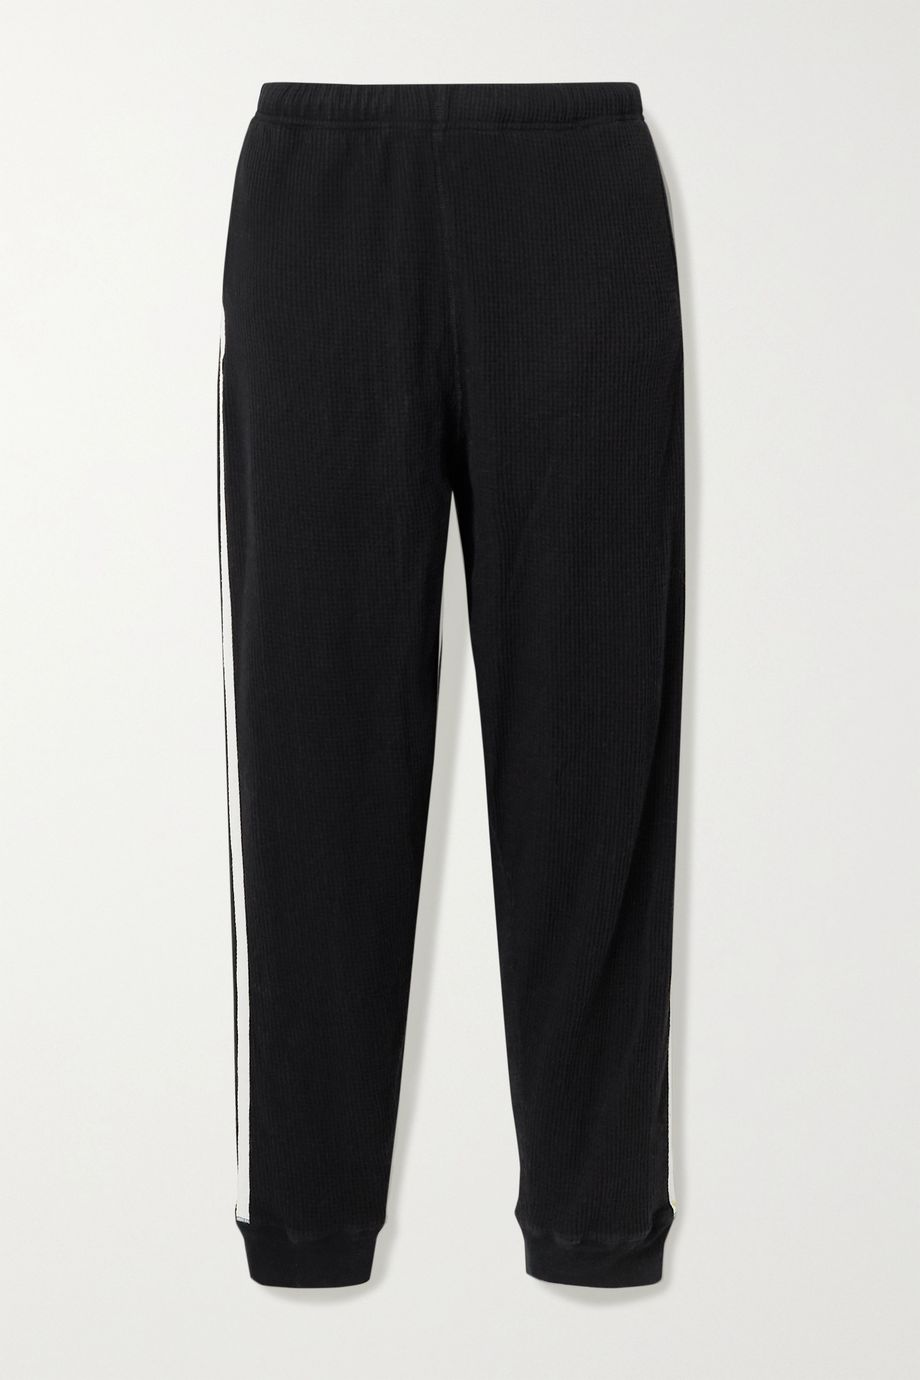 Bassike + NET SUSTAIN canvas-trimmed waffle-knit cotton track pants